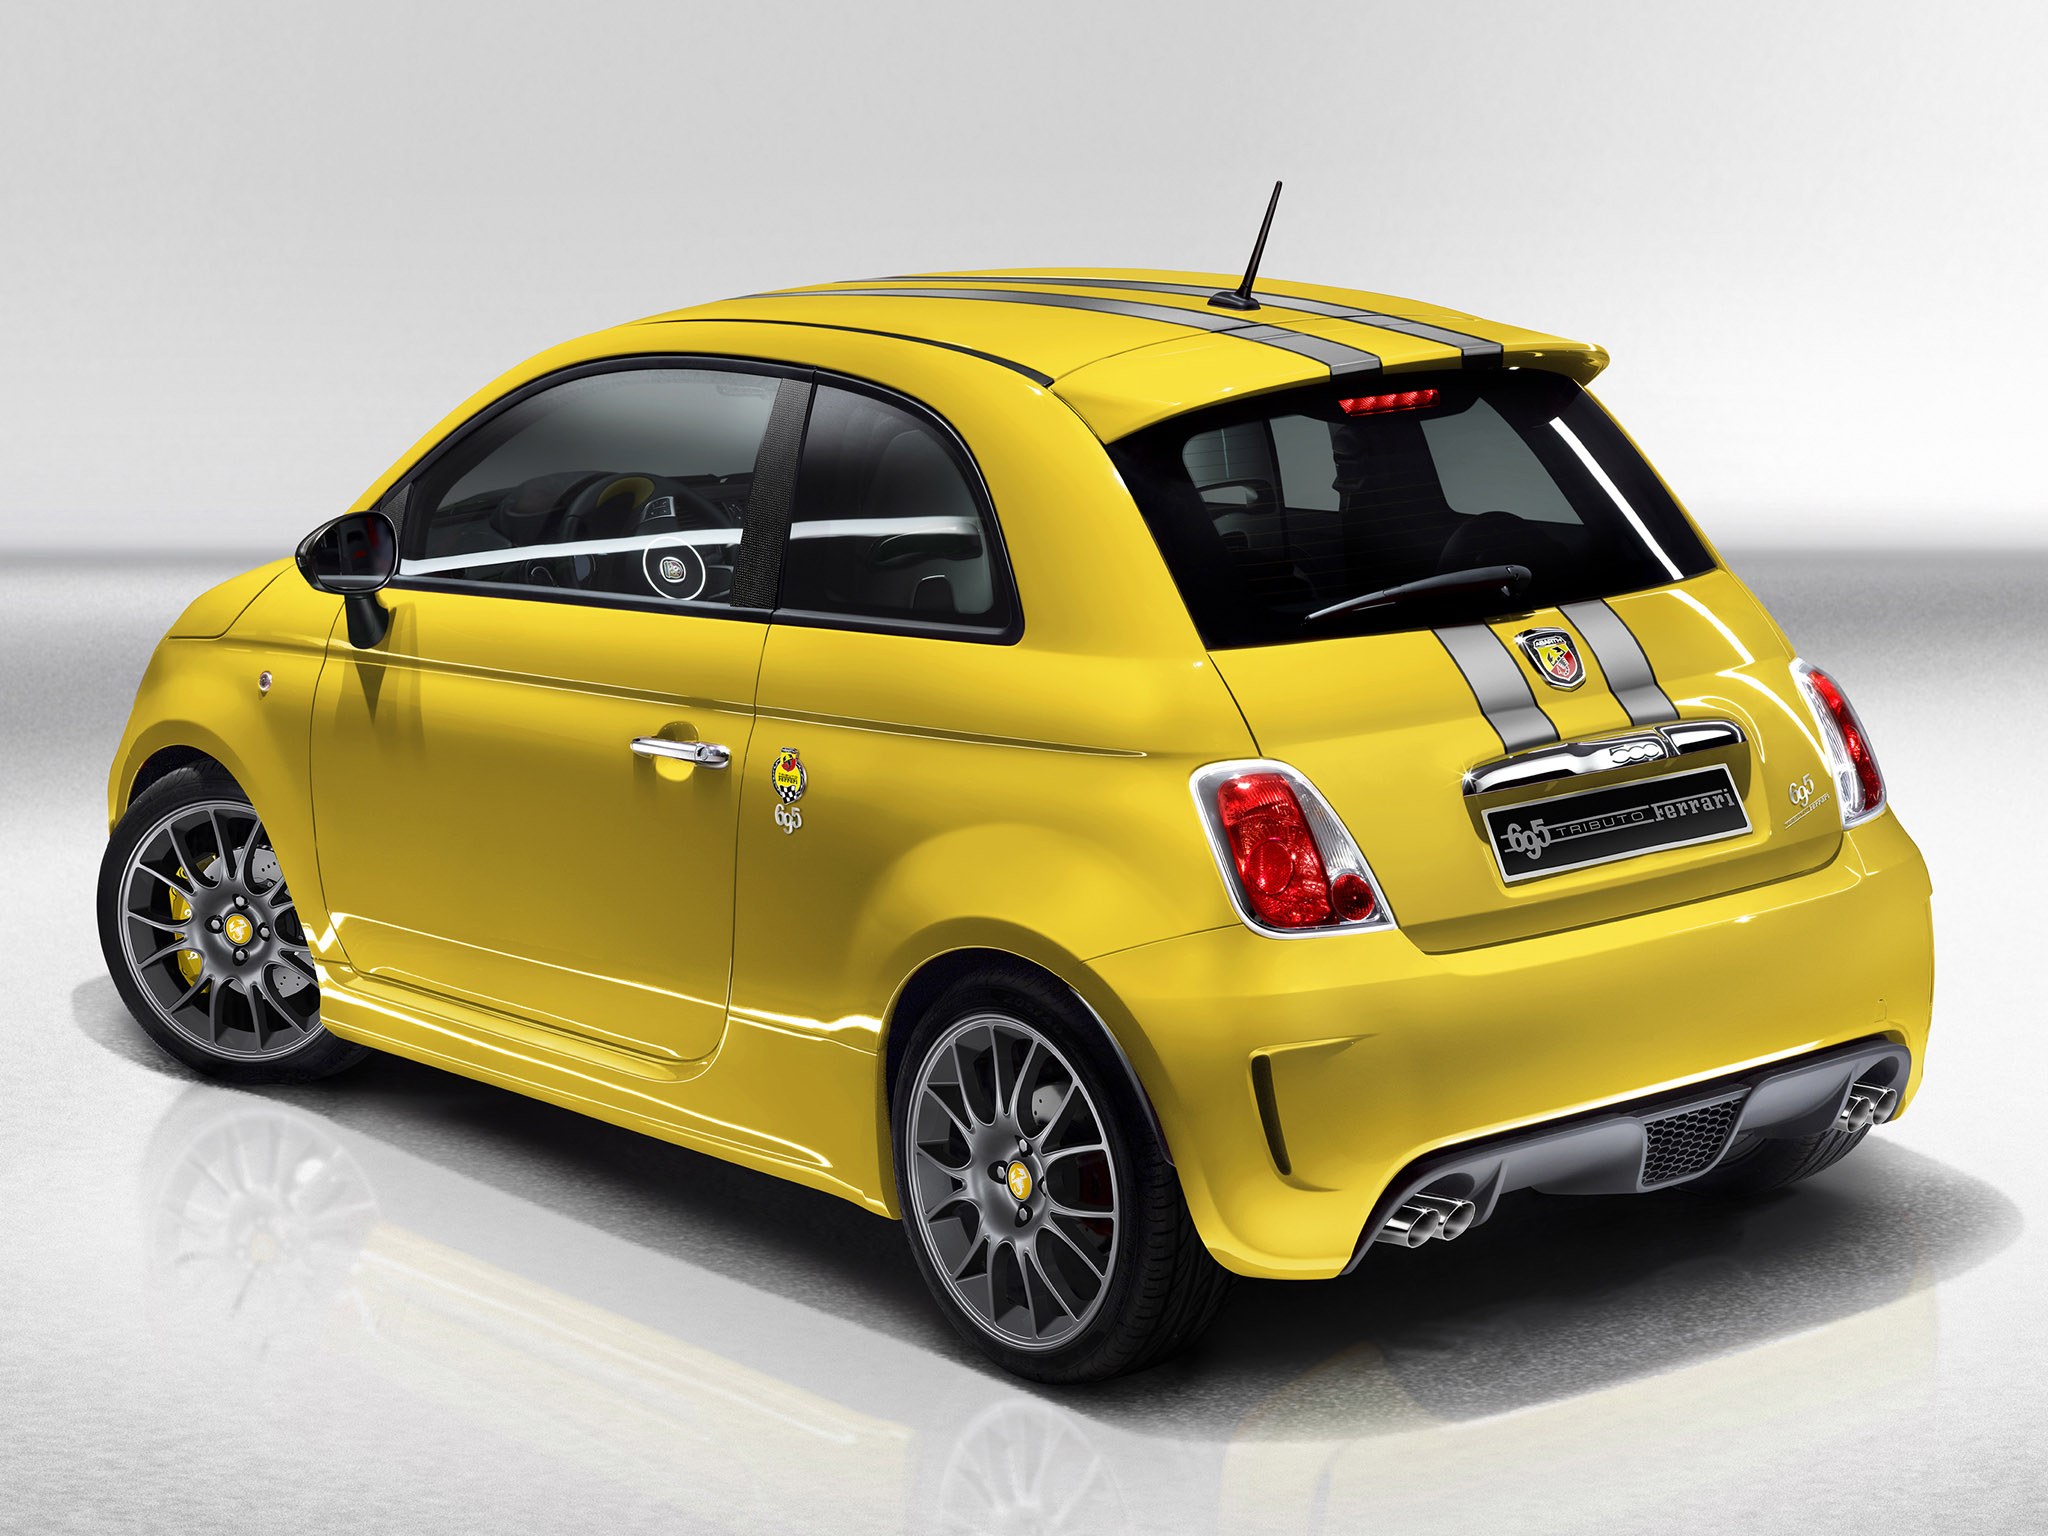 fiat 500 abarth 695 tributo ferrari 2011 fiat 500 abarth 695 tributo ferrari 2011 photo 03 car. Black Bedroom Furniture Sets. Home Design Ideas